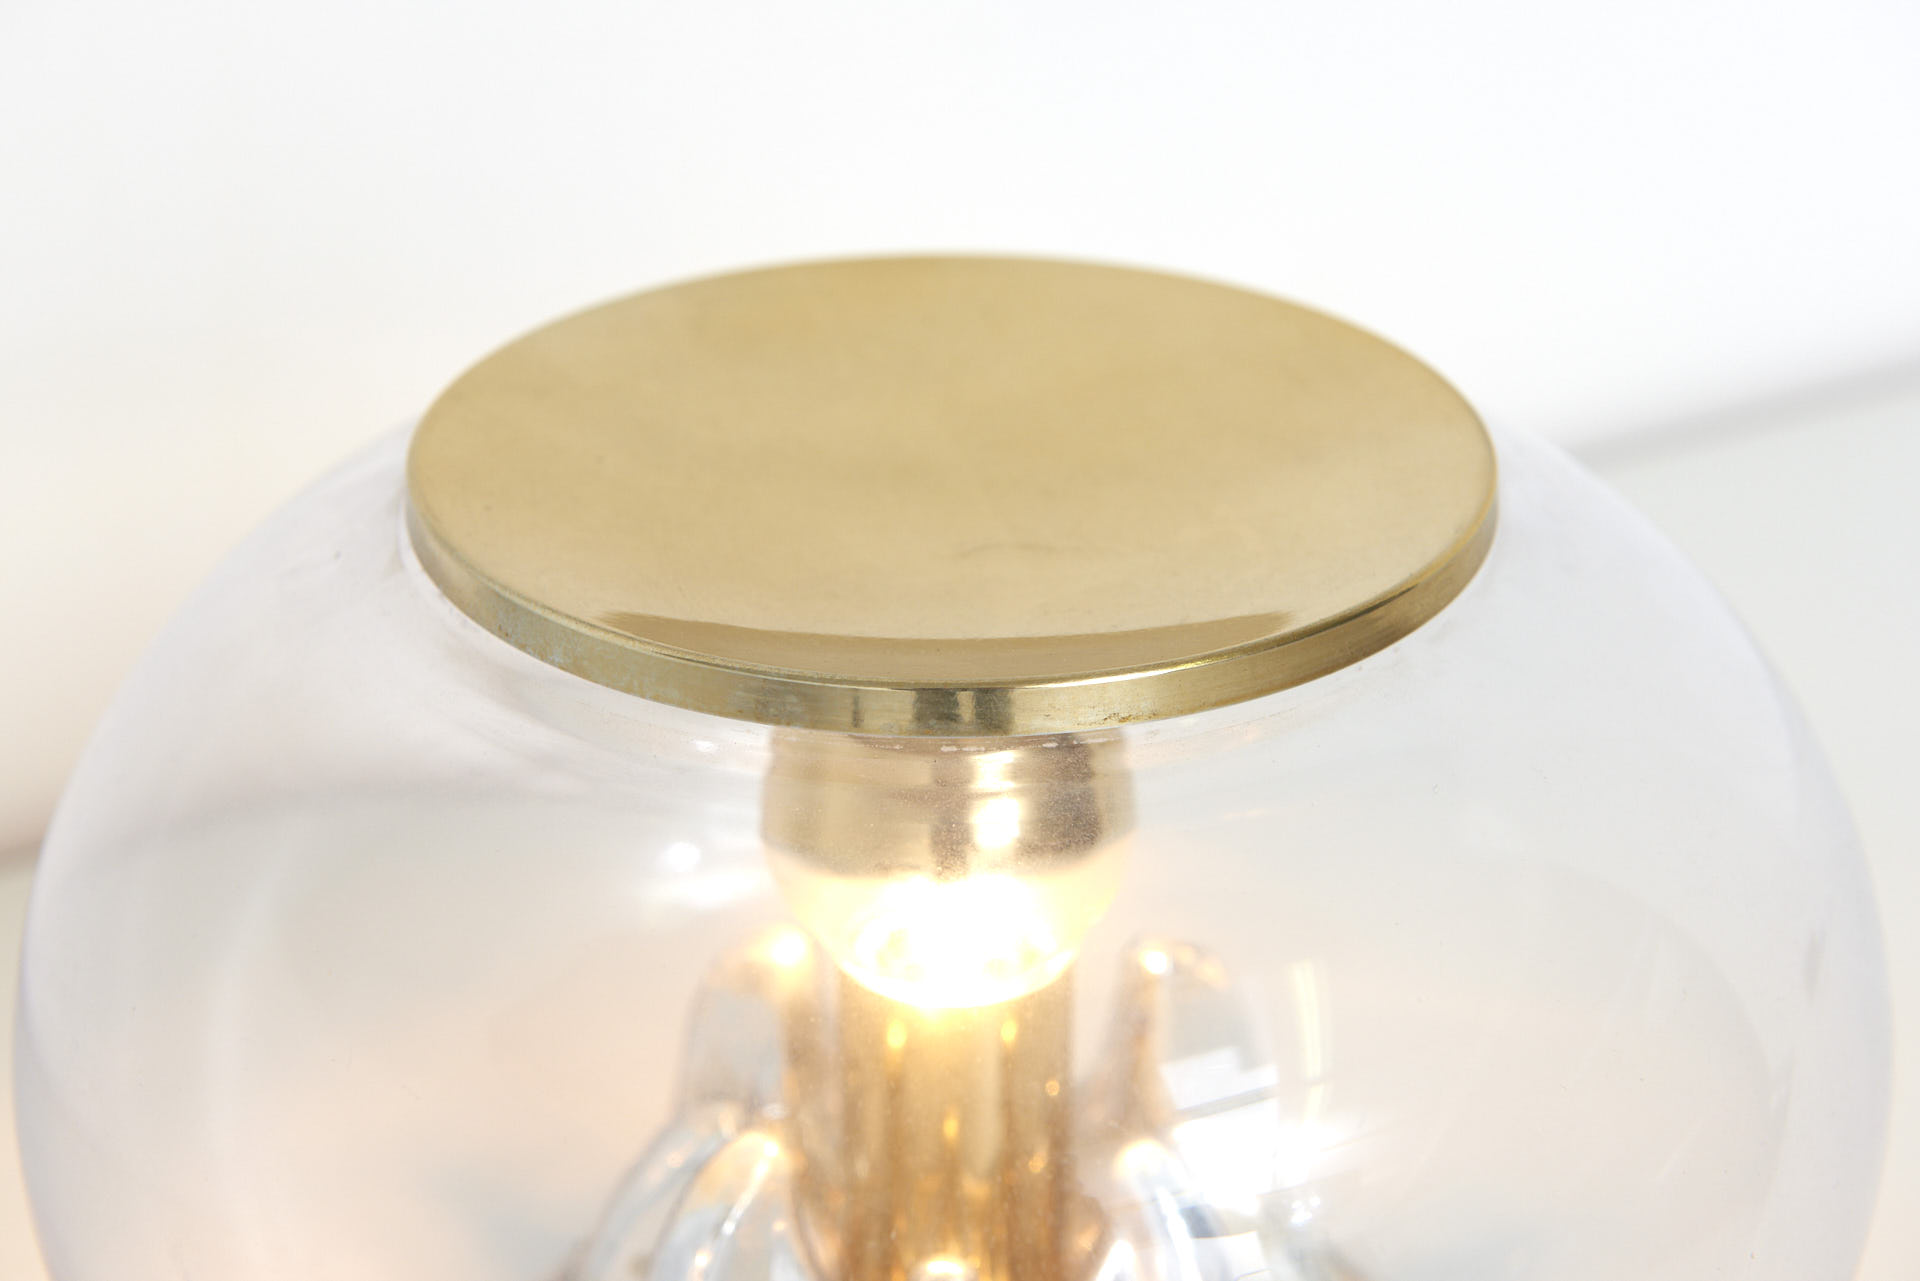 modestfurniture-vintage-1856-table-lamp-glass-dome-brass-lid02